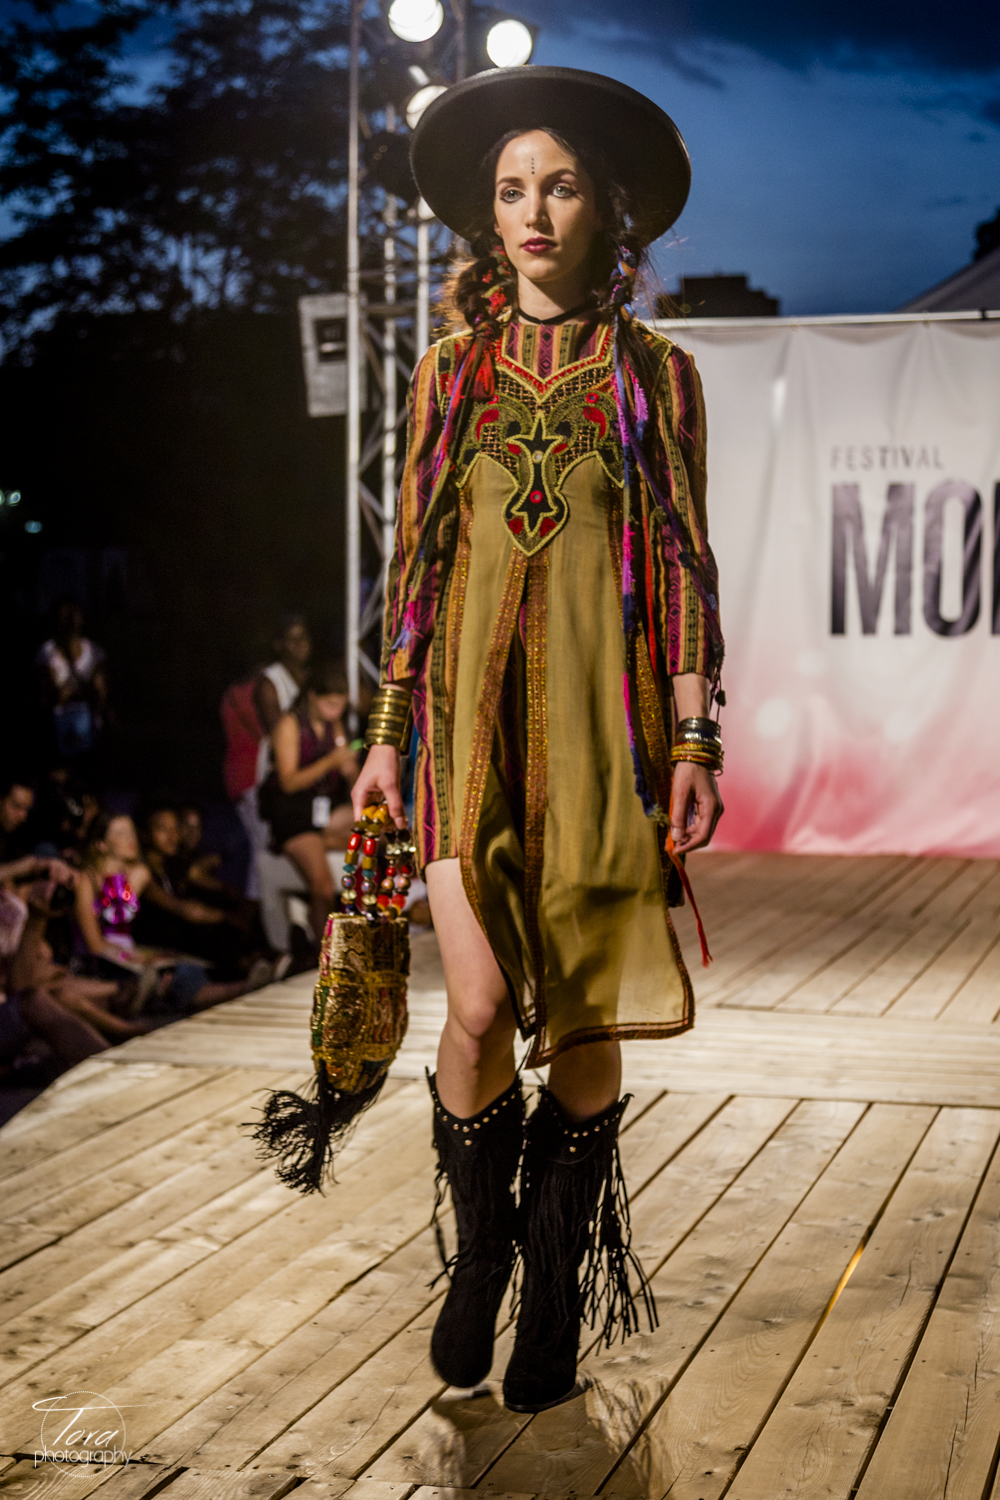 Tora Photography - Festival Mode et Design Montreal -185.jpg